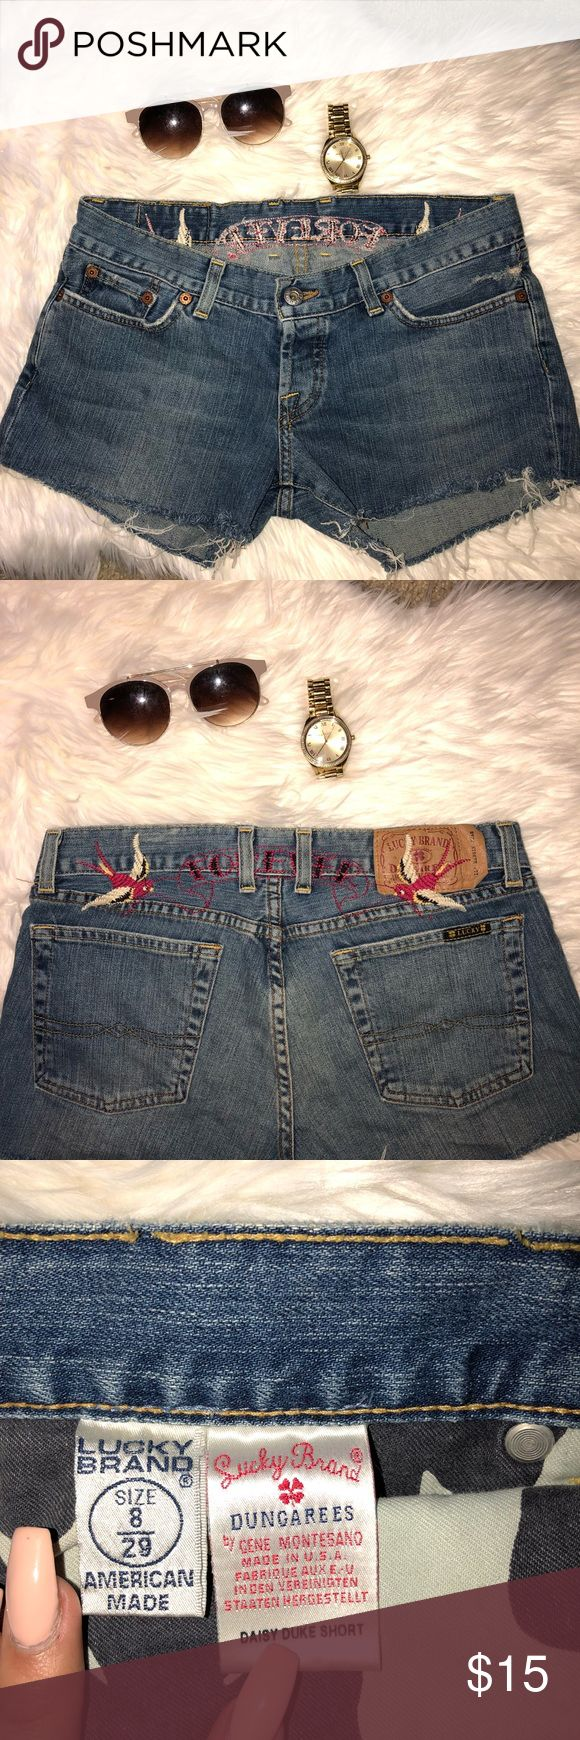 🎄XMAS SALE🎄 LUCKY BRAND DAISY DUKE SHORTS 💕Super Cute On  💕Embroidered Swallows On Back  💕Worn Once   💕I️ LOVE OFFERS😍 Lucky Brand Shorts Jean Shorts